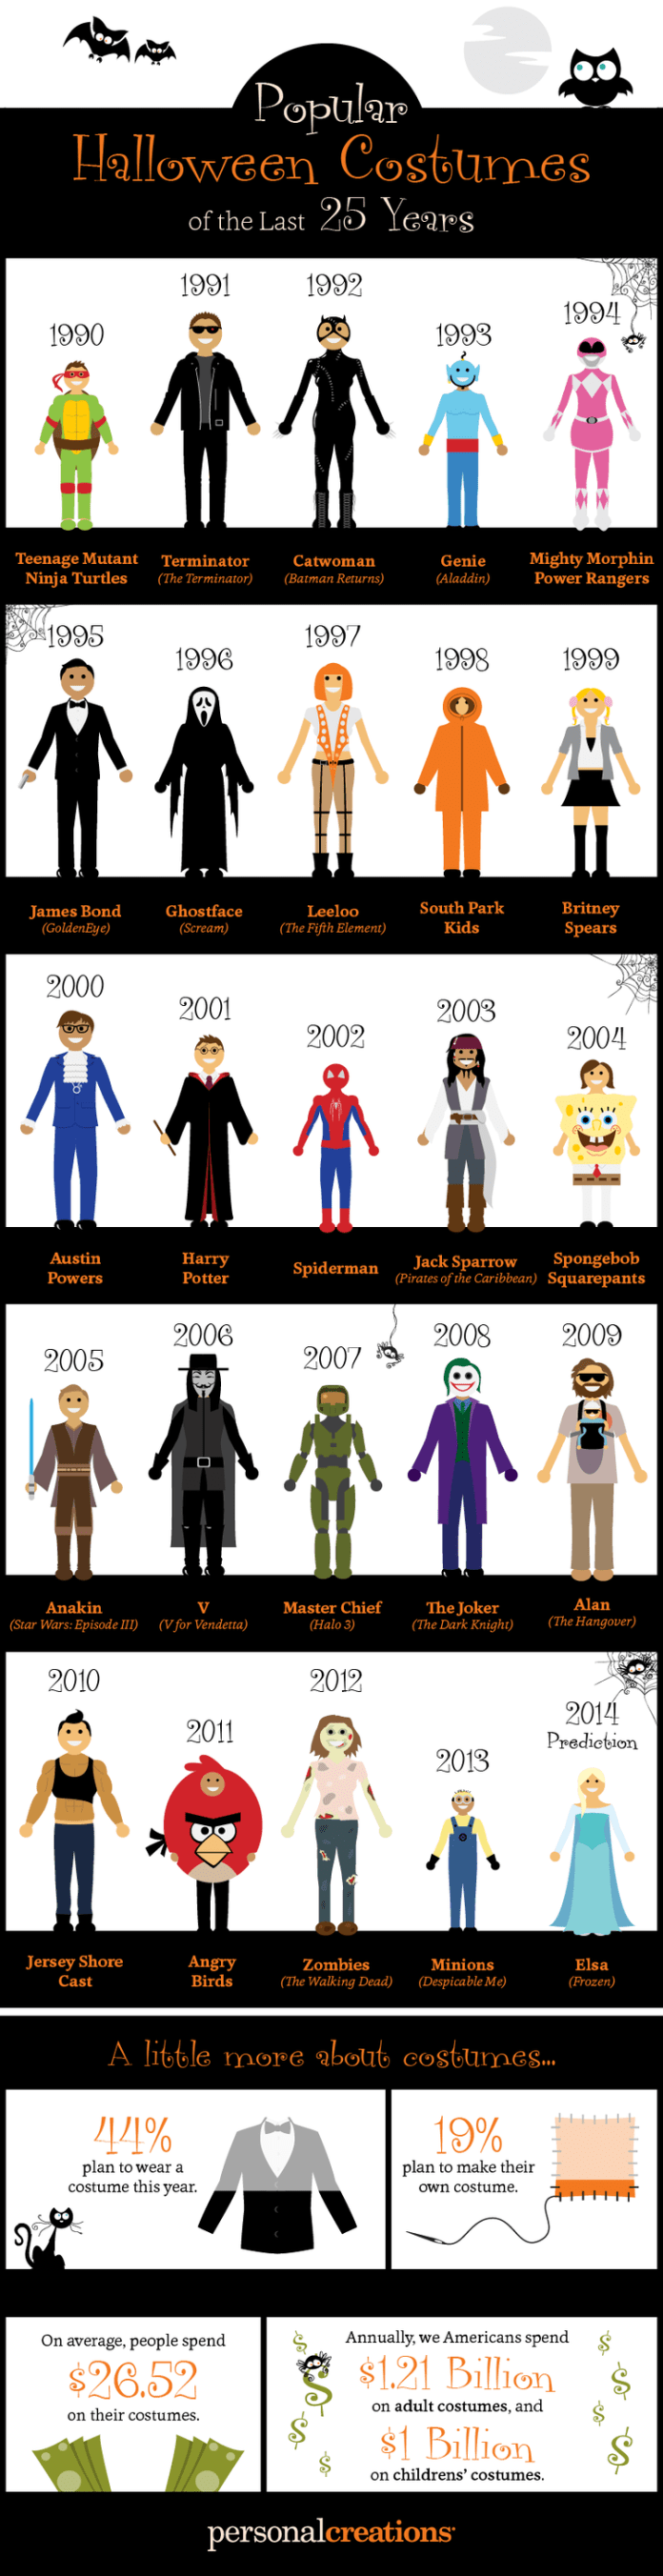 most-popular-halloween-costumes-of-the-last-25-years-infographic